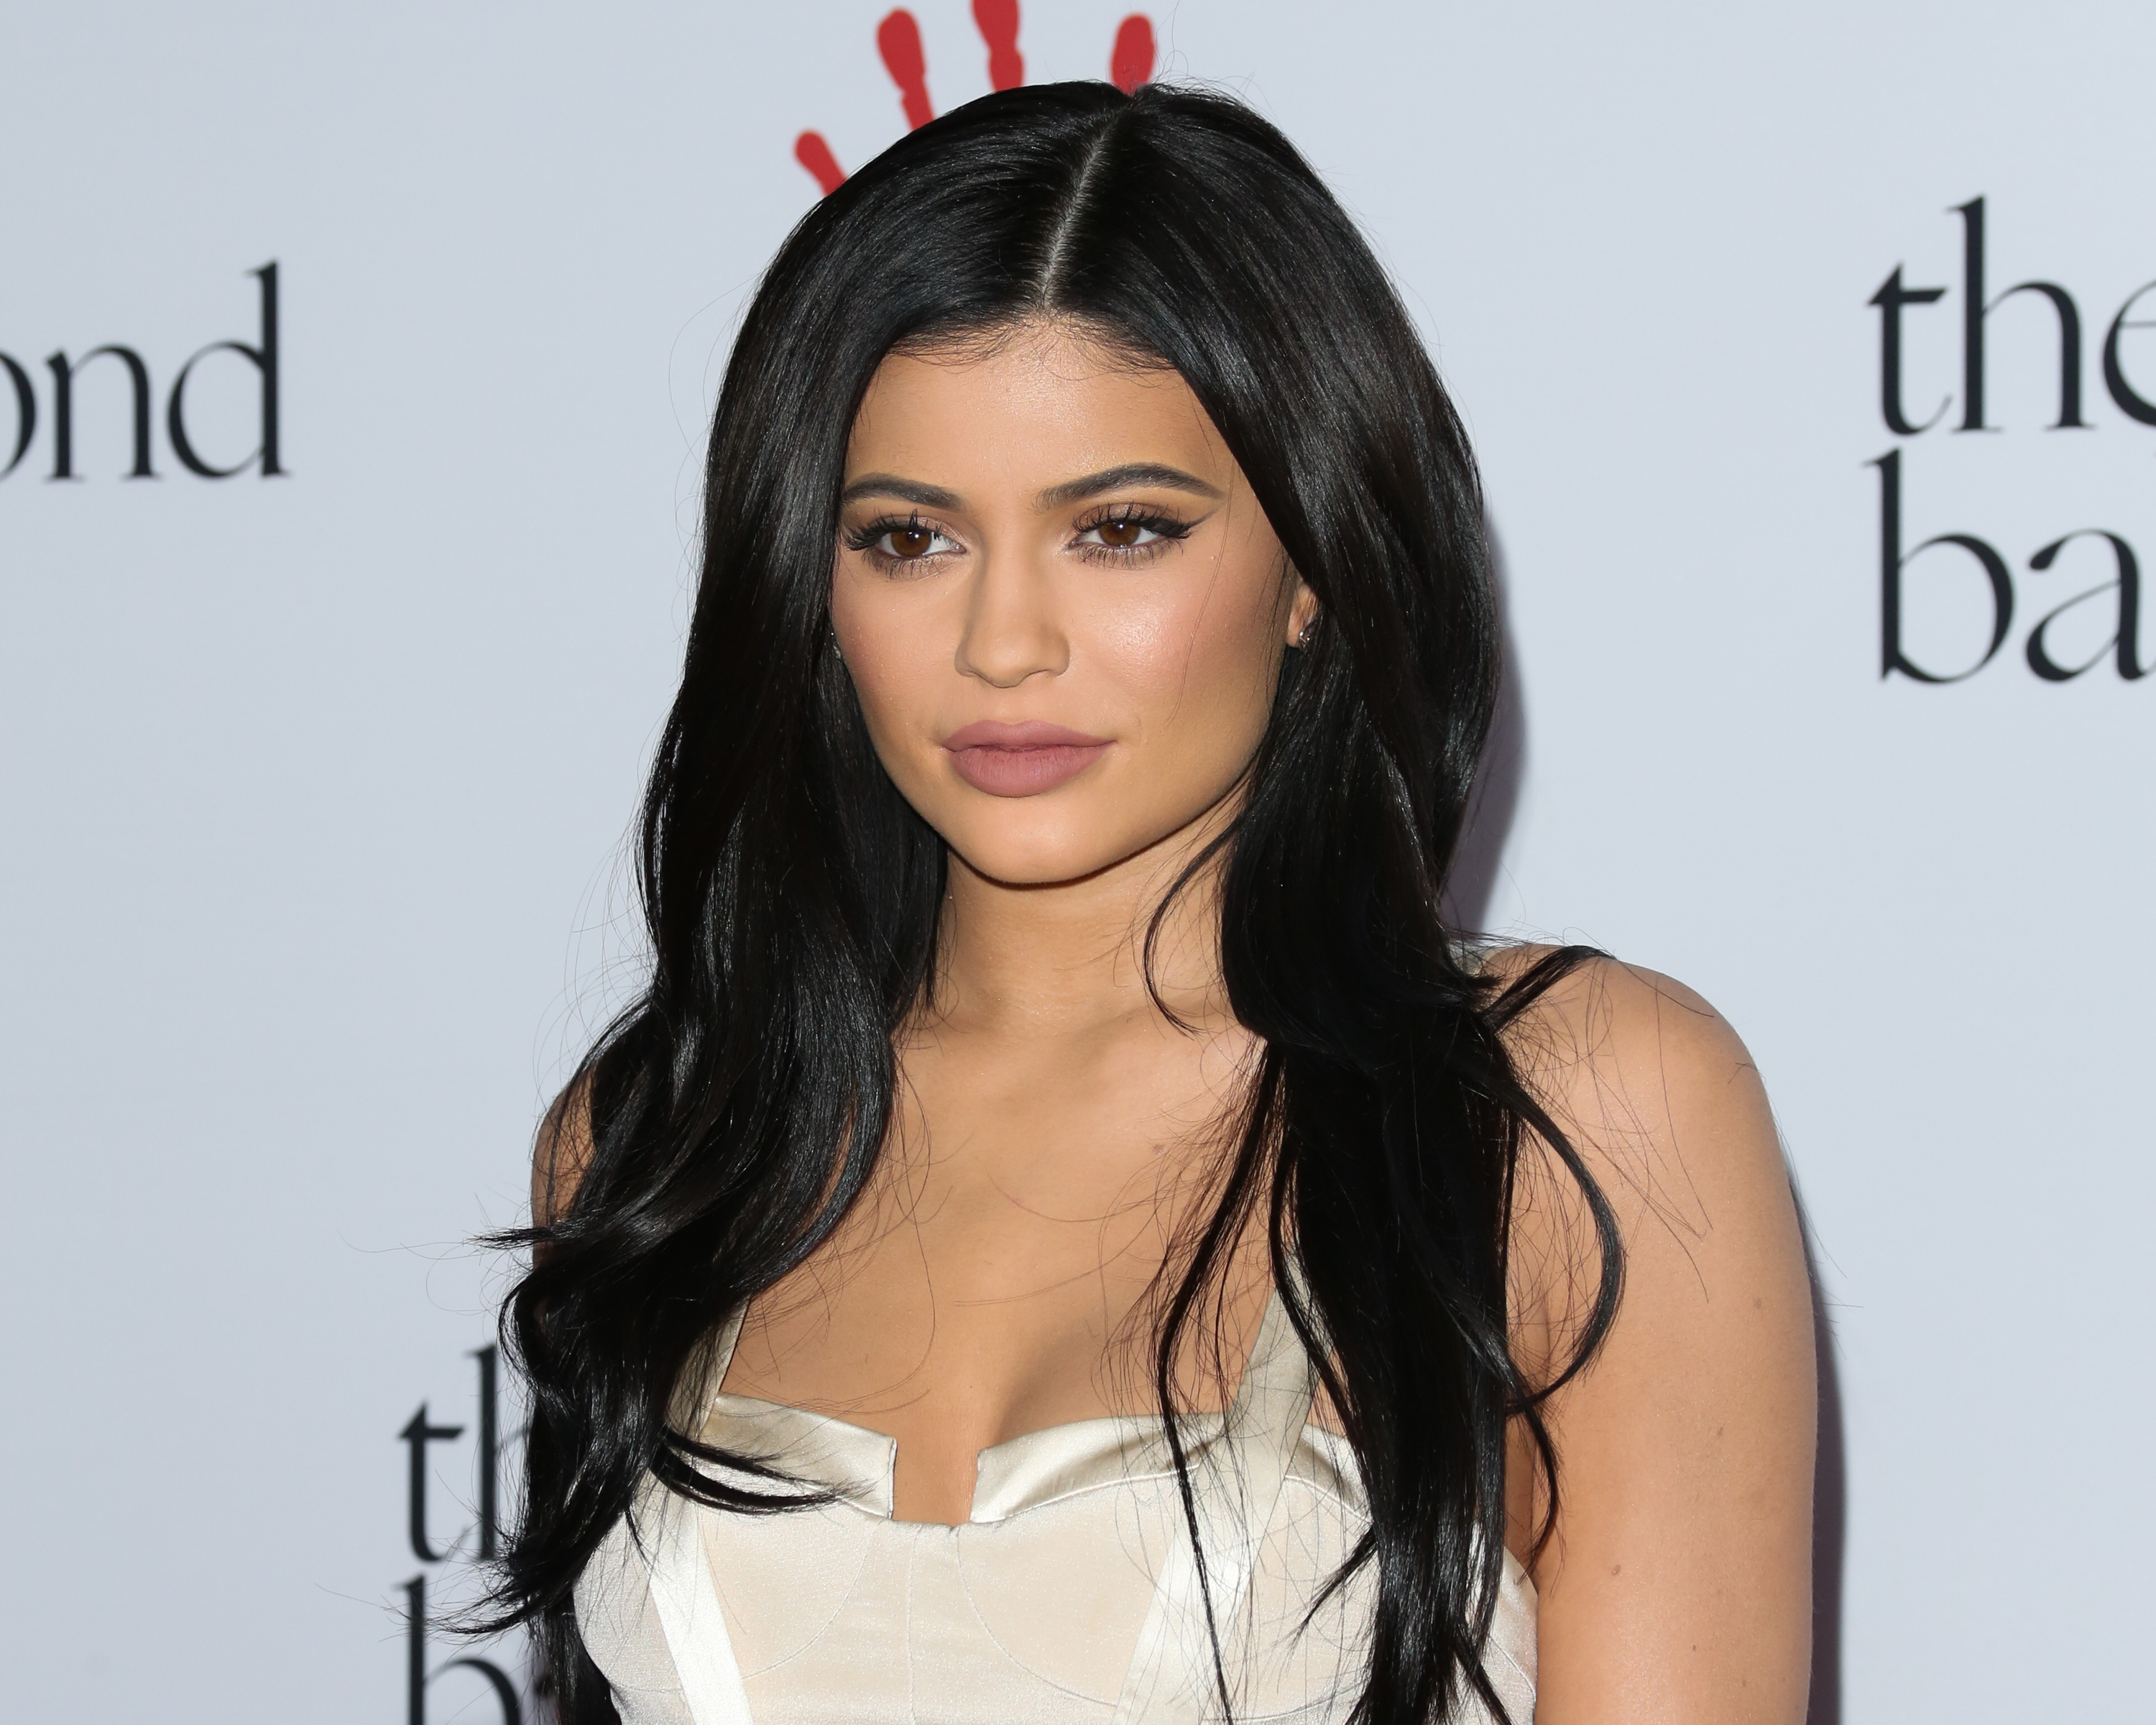 Kylie Jenner's New Tattoo Sounds Like a Pretty Good New Year's Resolution